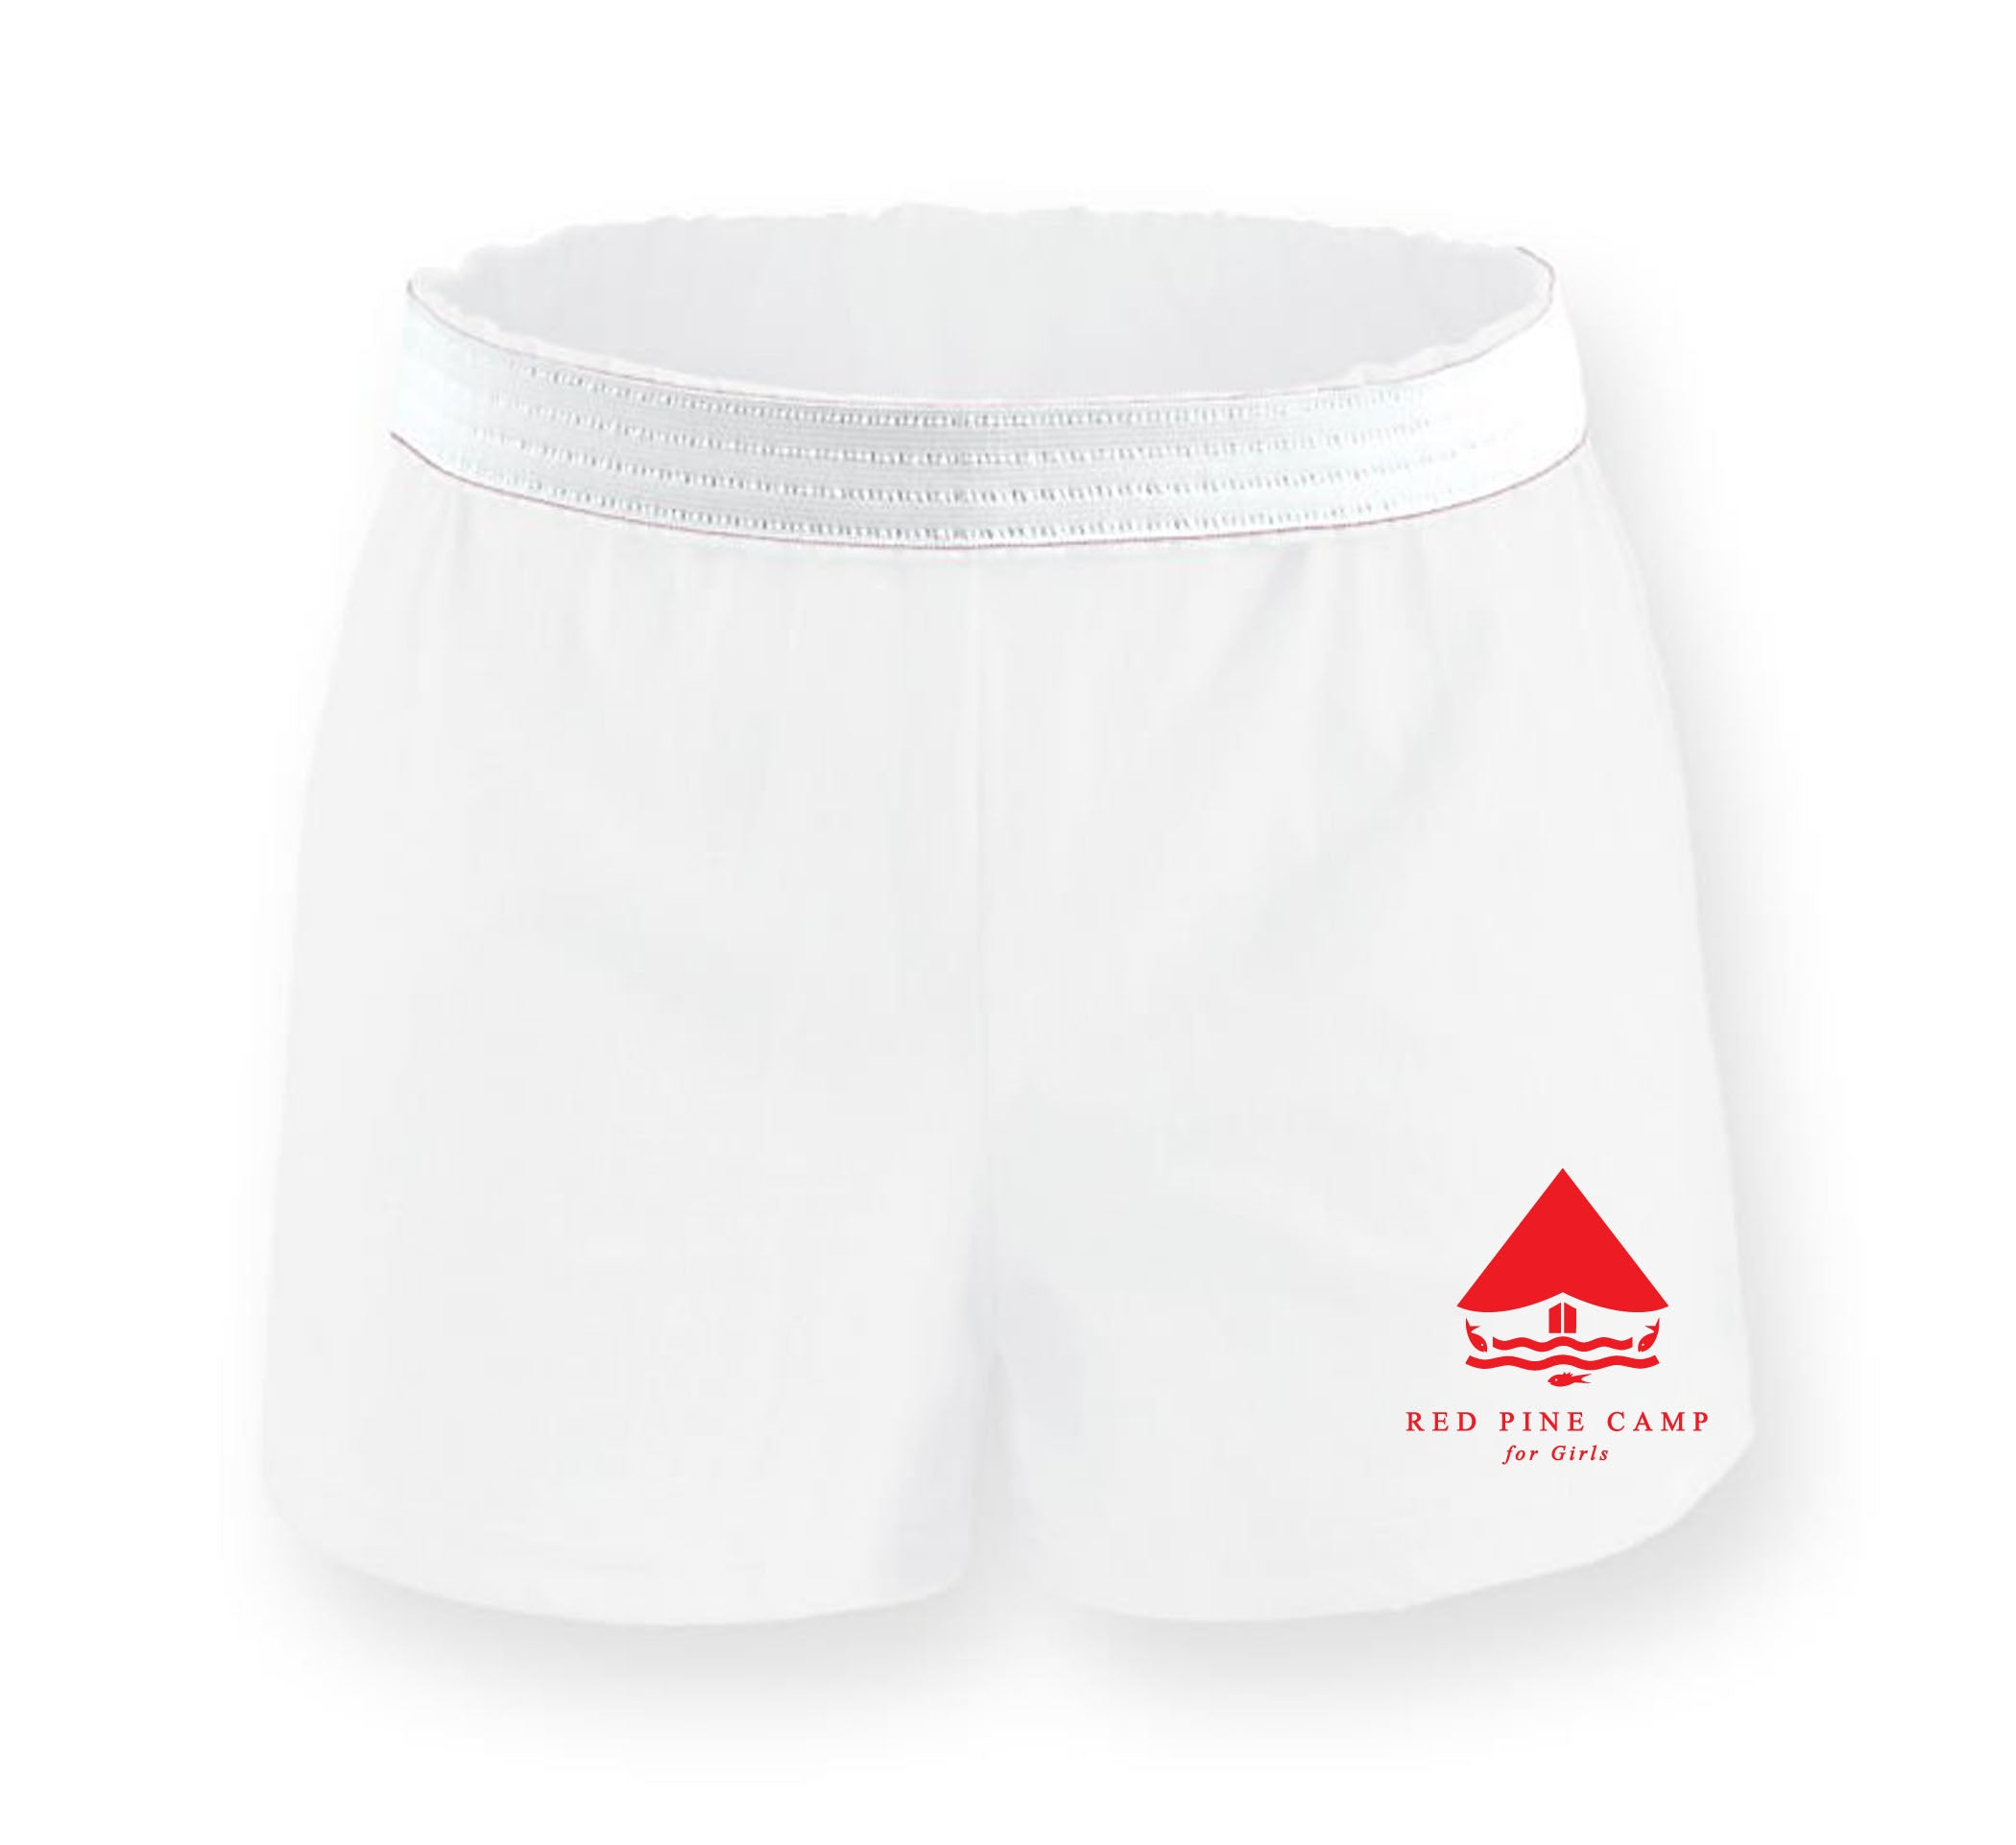 Red Pine Camp Soffe Shorts